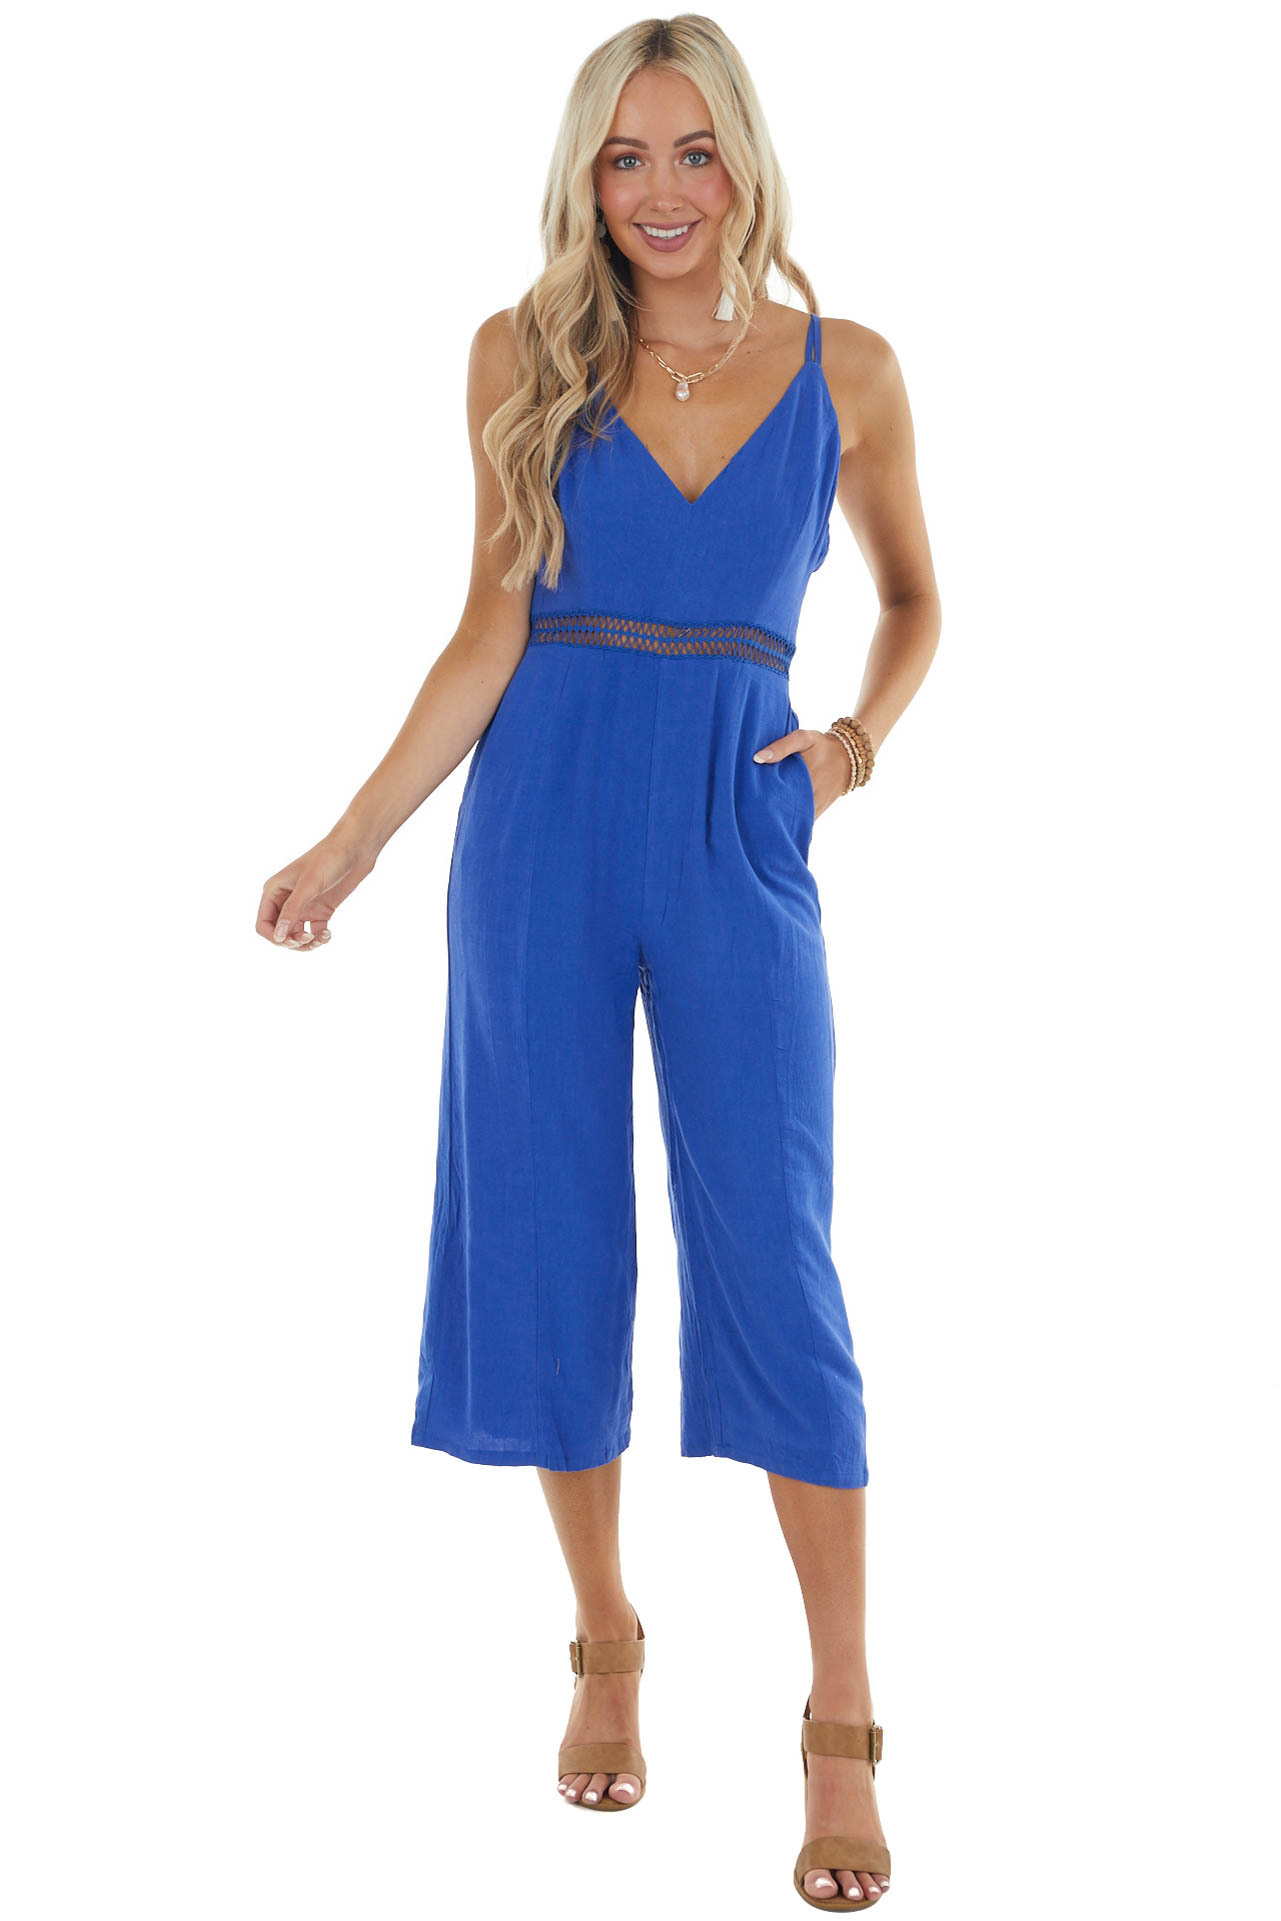 Royal Blue Sleeveless Jumpsuit with Lace Details on Waist